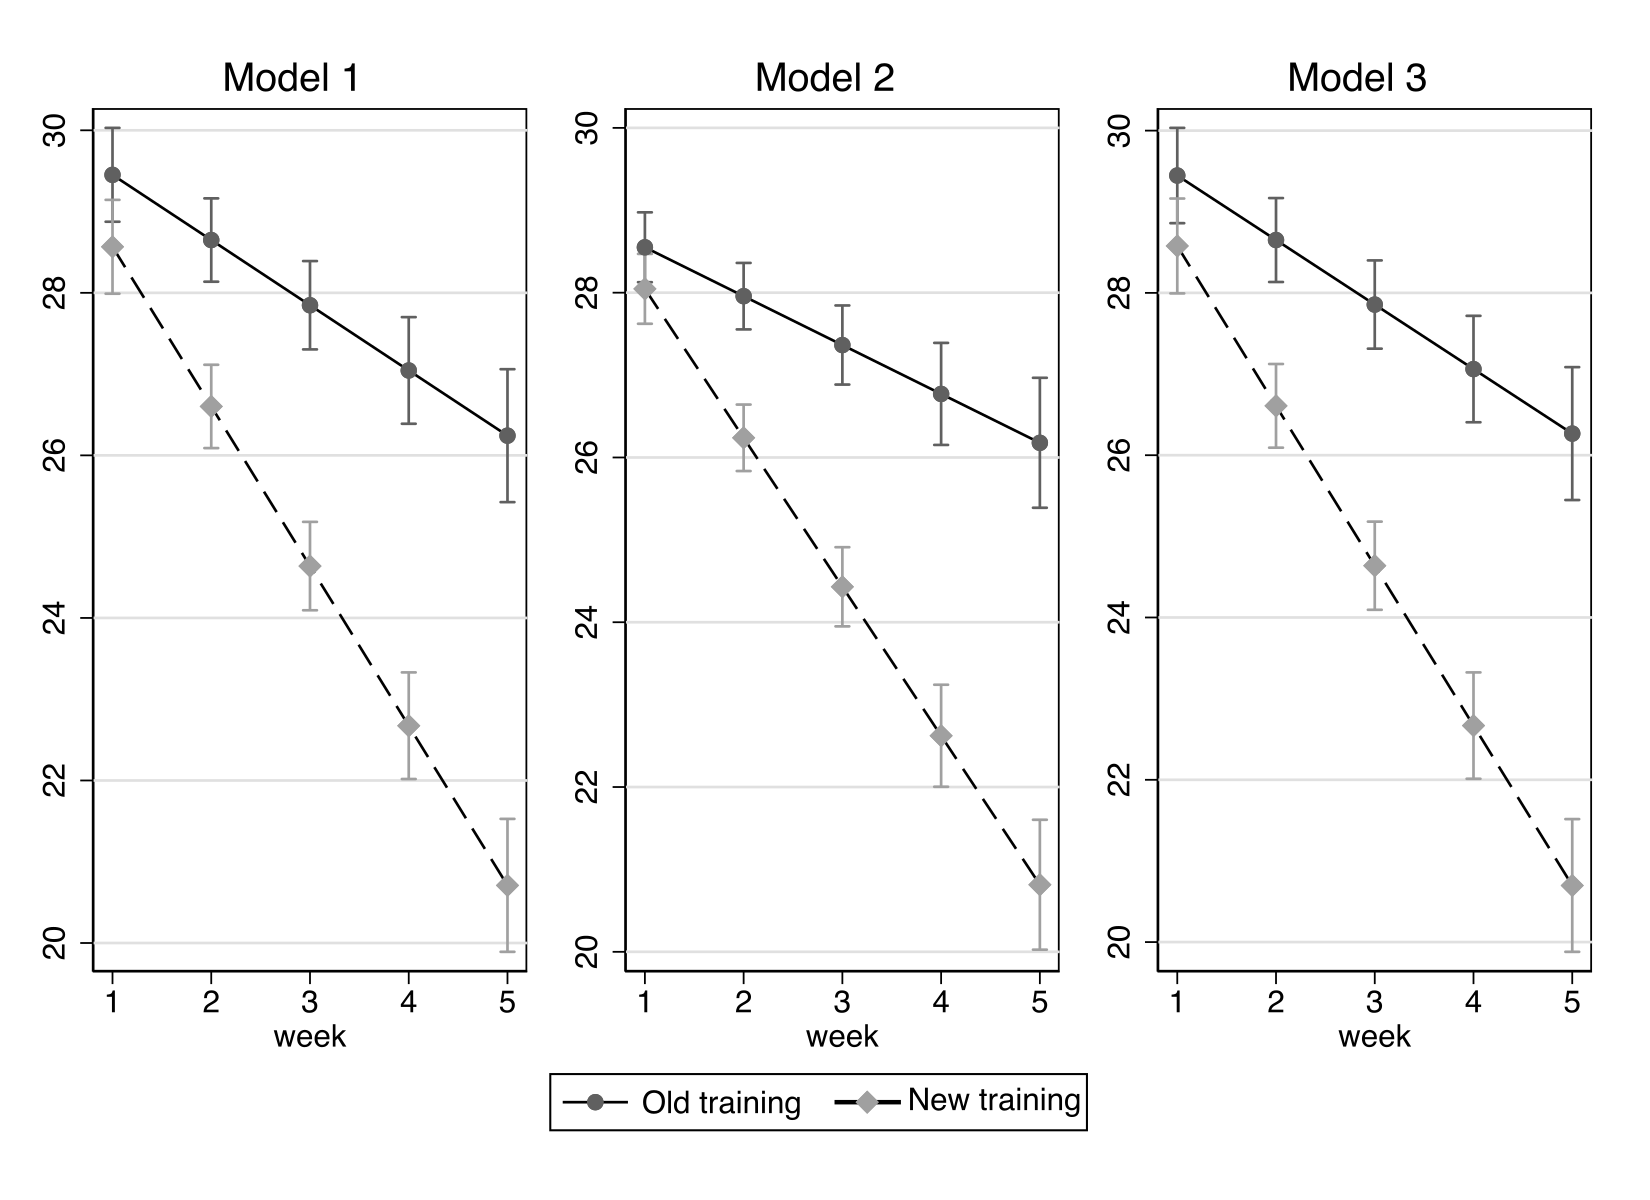 [Image: Stata output for a multilevel linear regression]